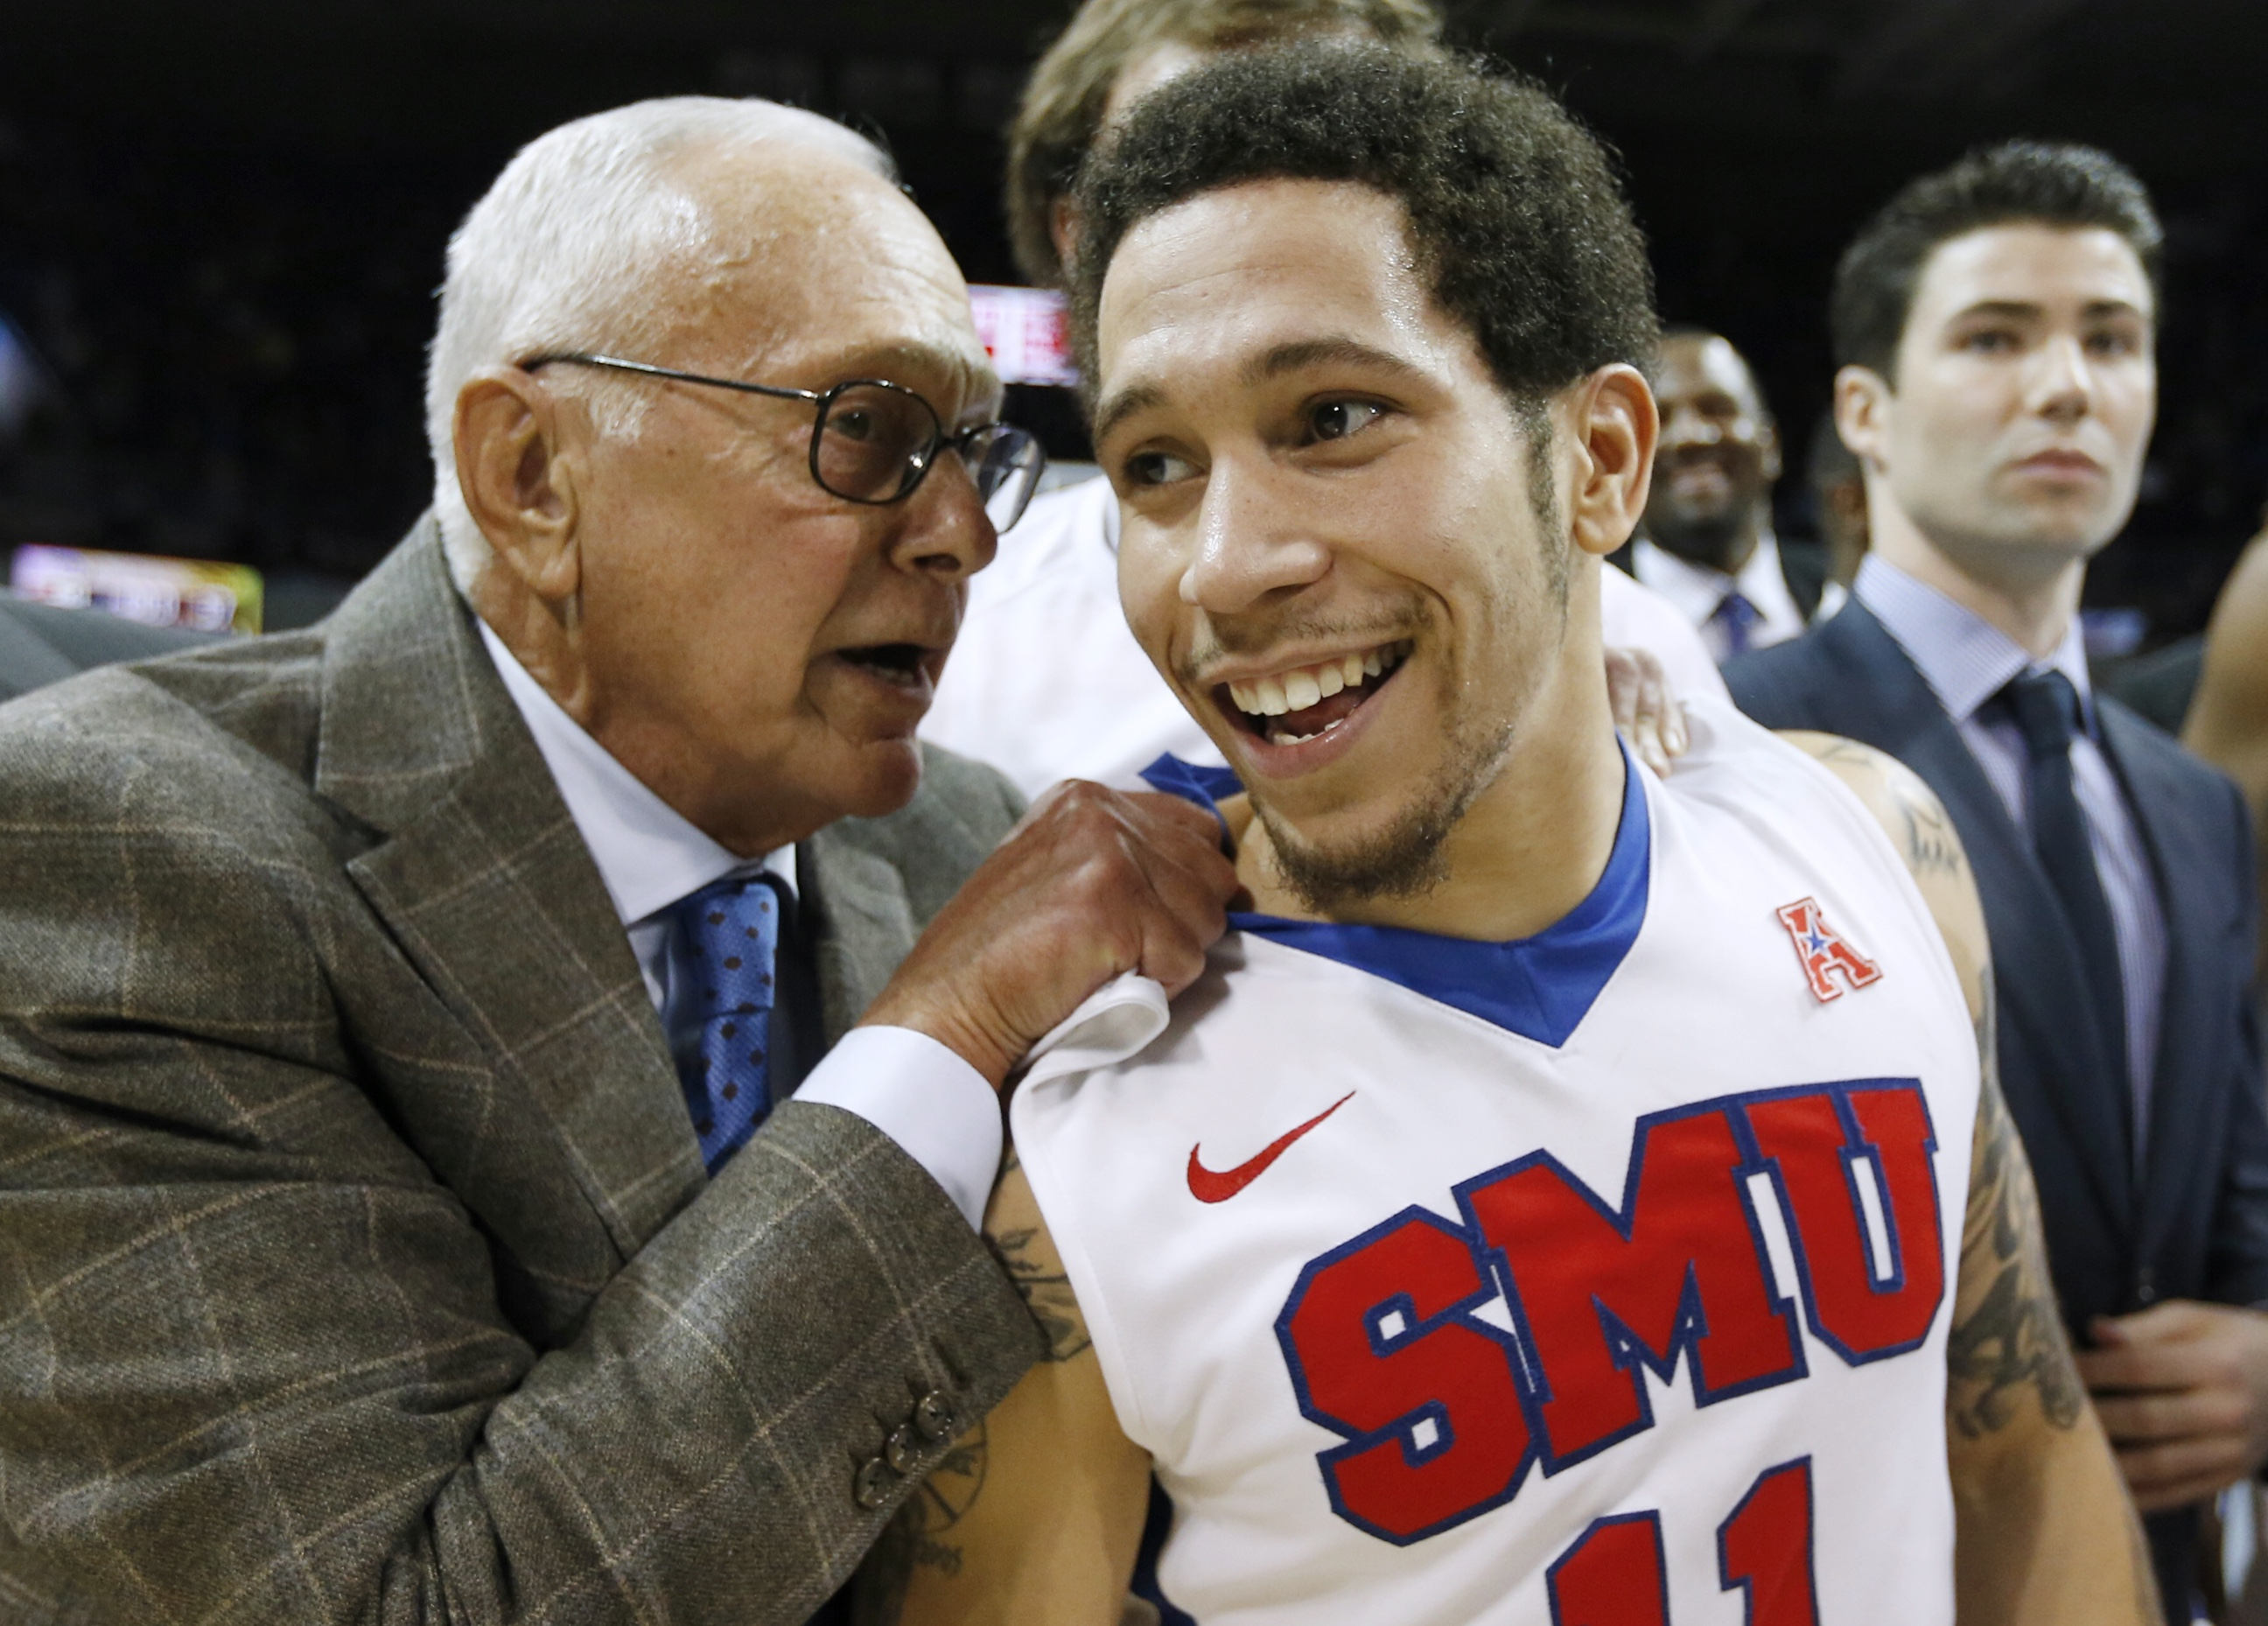 SMU coach Larry Brown celebrates with guard Nic Moore (11) the team's  59-57 win over Cincinnati in an NCAA college basketball game Thursday, Jan. 7, 2016, in Dallas. (AP Photo/Brandon Wade)